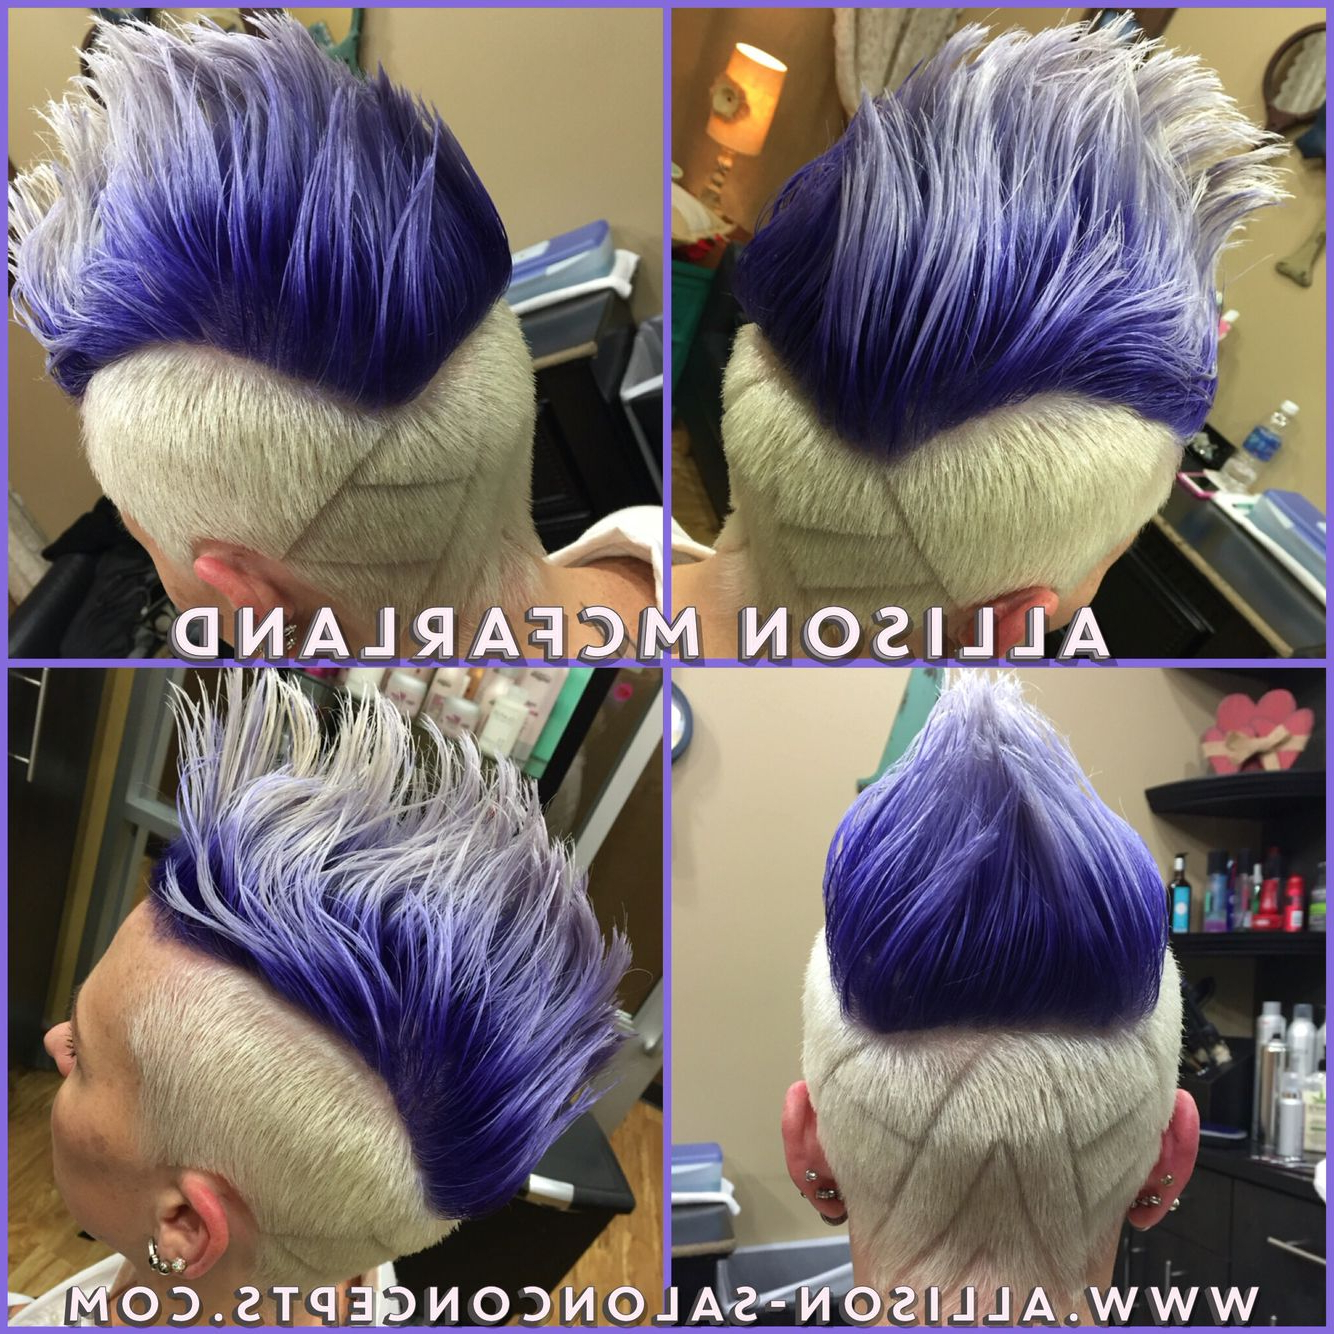 Purple Ombré Mohawk And Hair Designallison Mcfarland Salon Throughout Most Current Lavender Ombre Mohawk Hairstyles (View 16 of 20)